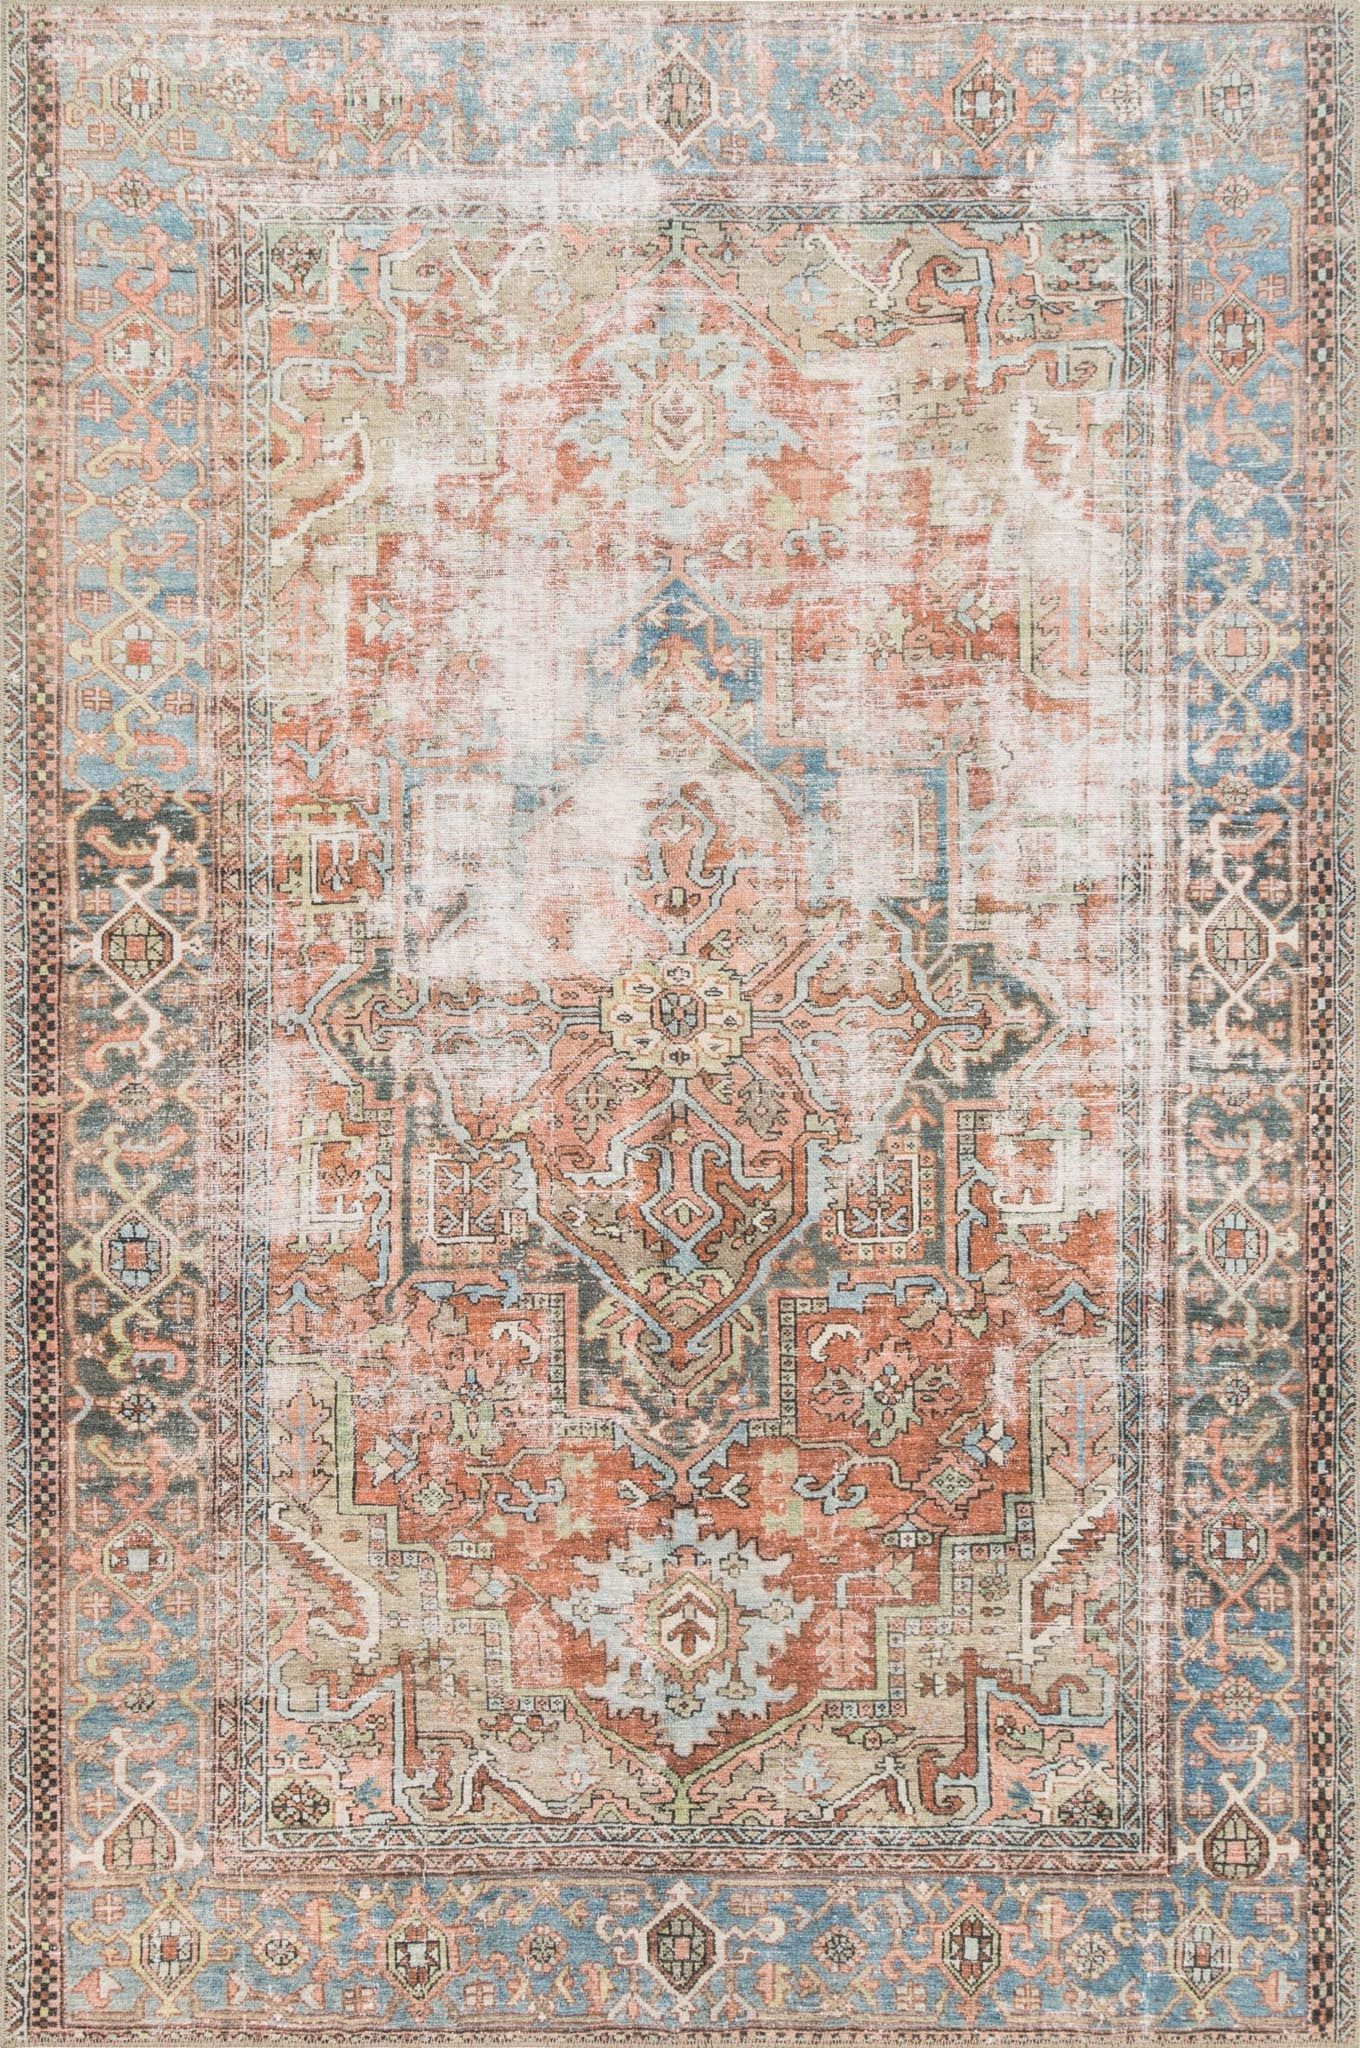 Lq 15 Color Terracotta Sky Size 5 X 7 6 Room Rugs Area